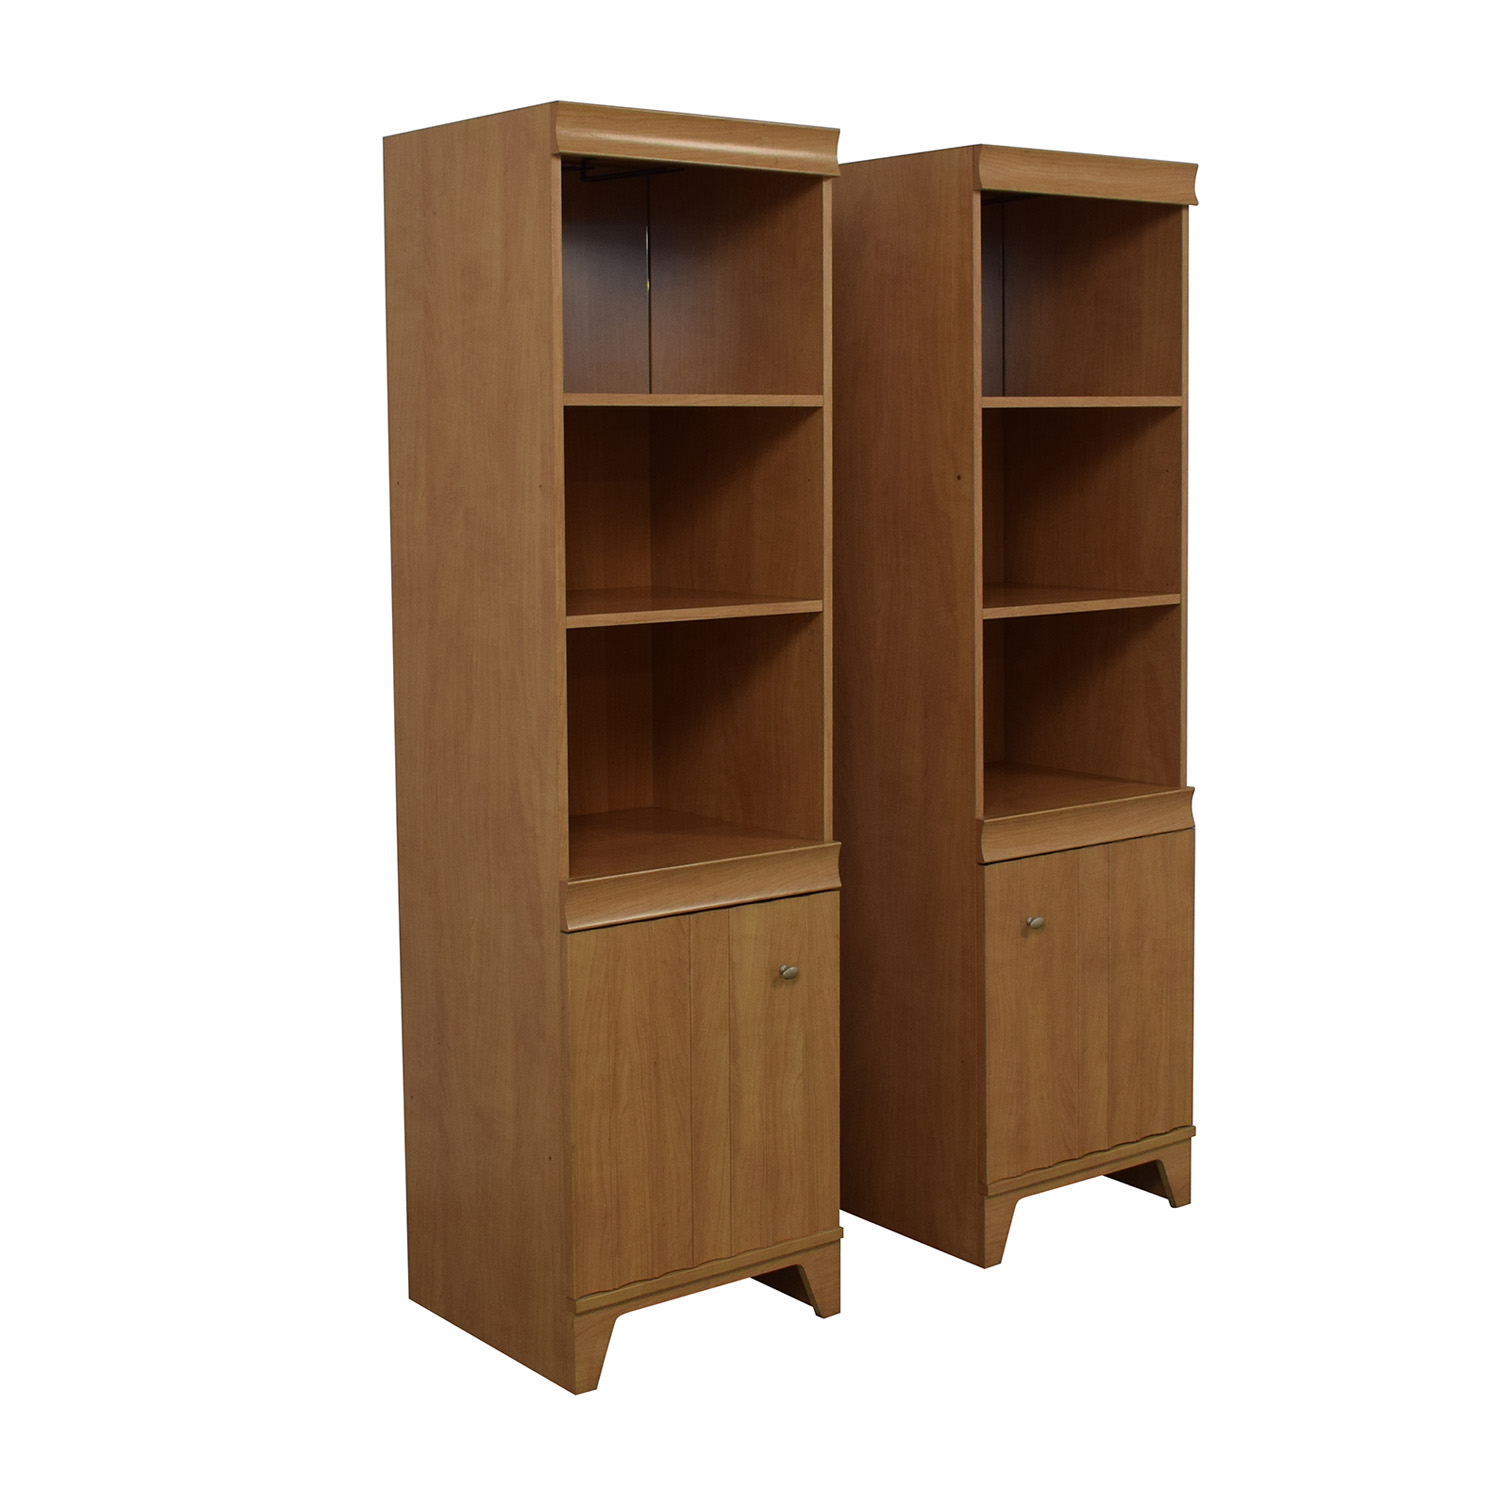 Italian Made Mirrored Bookcases